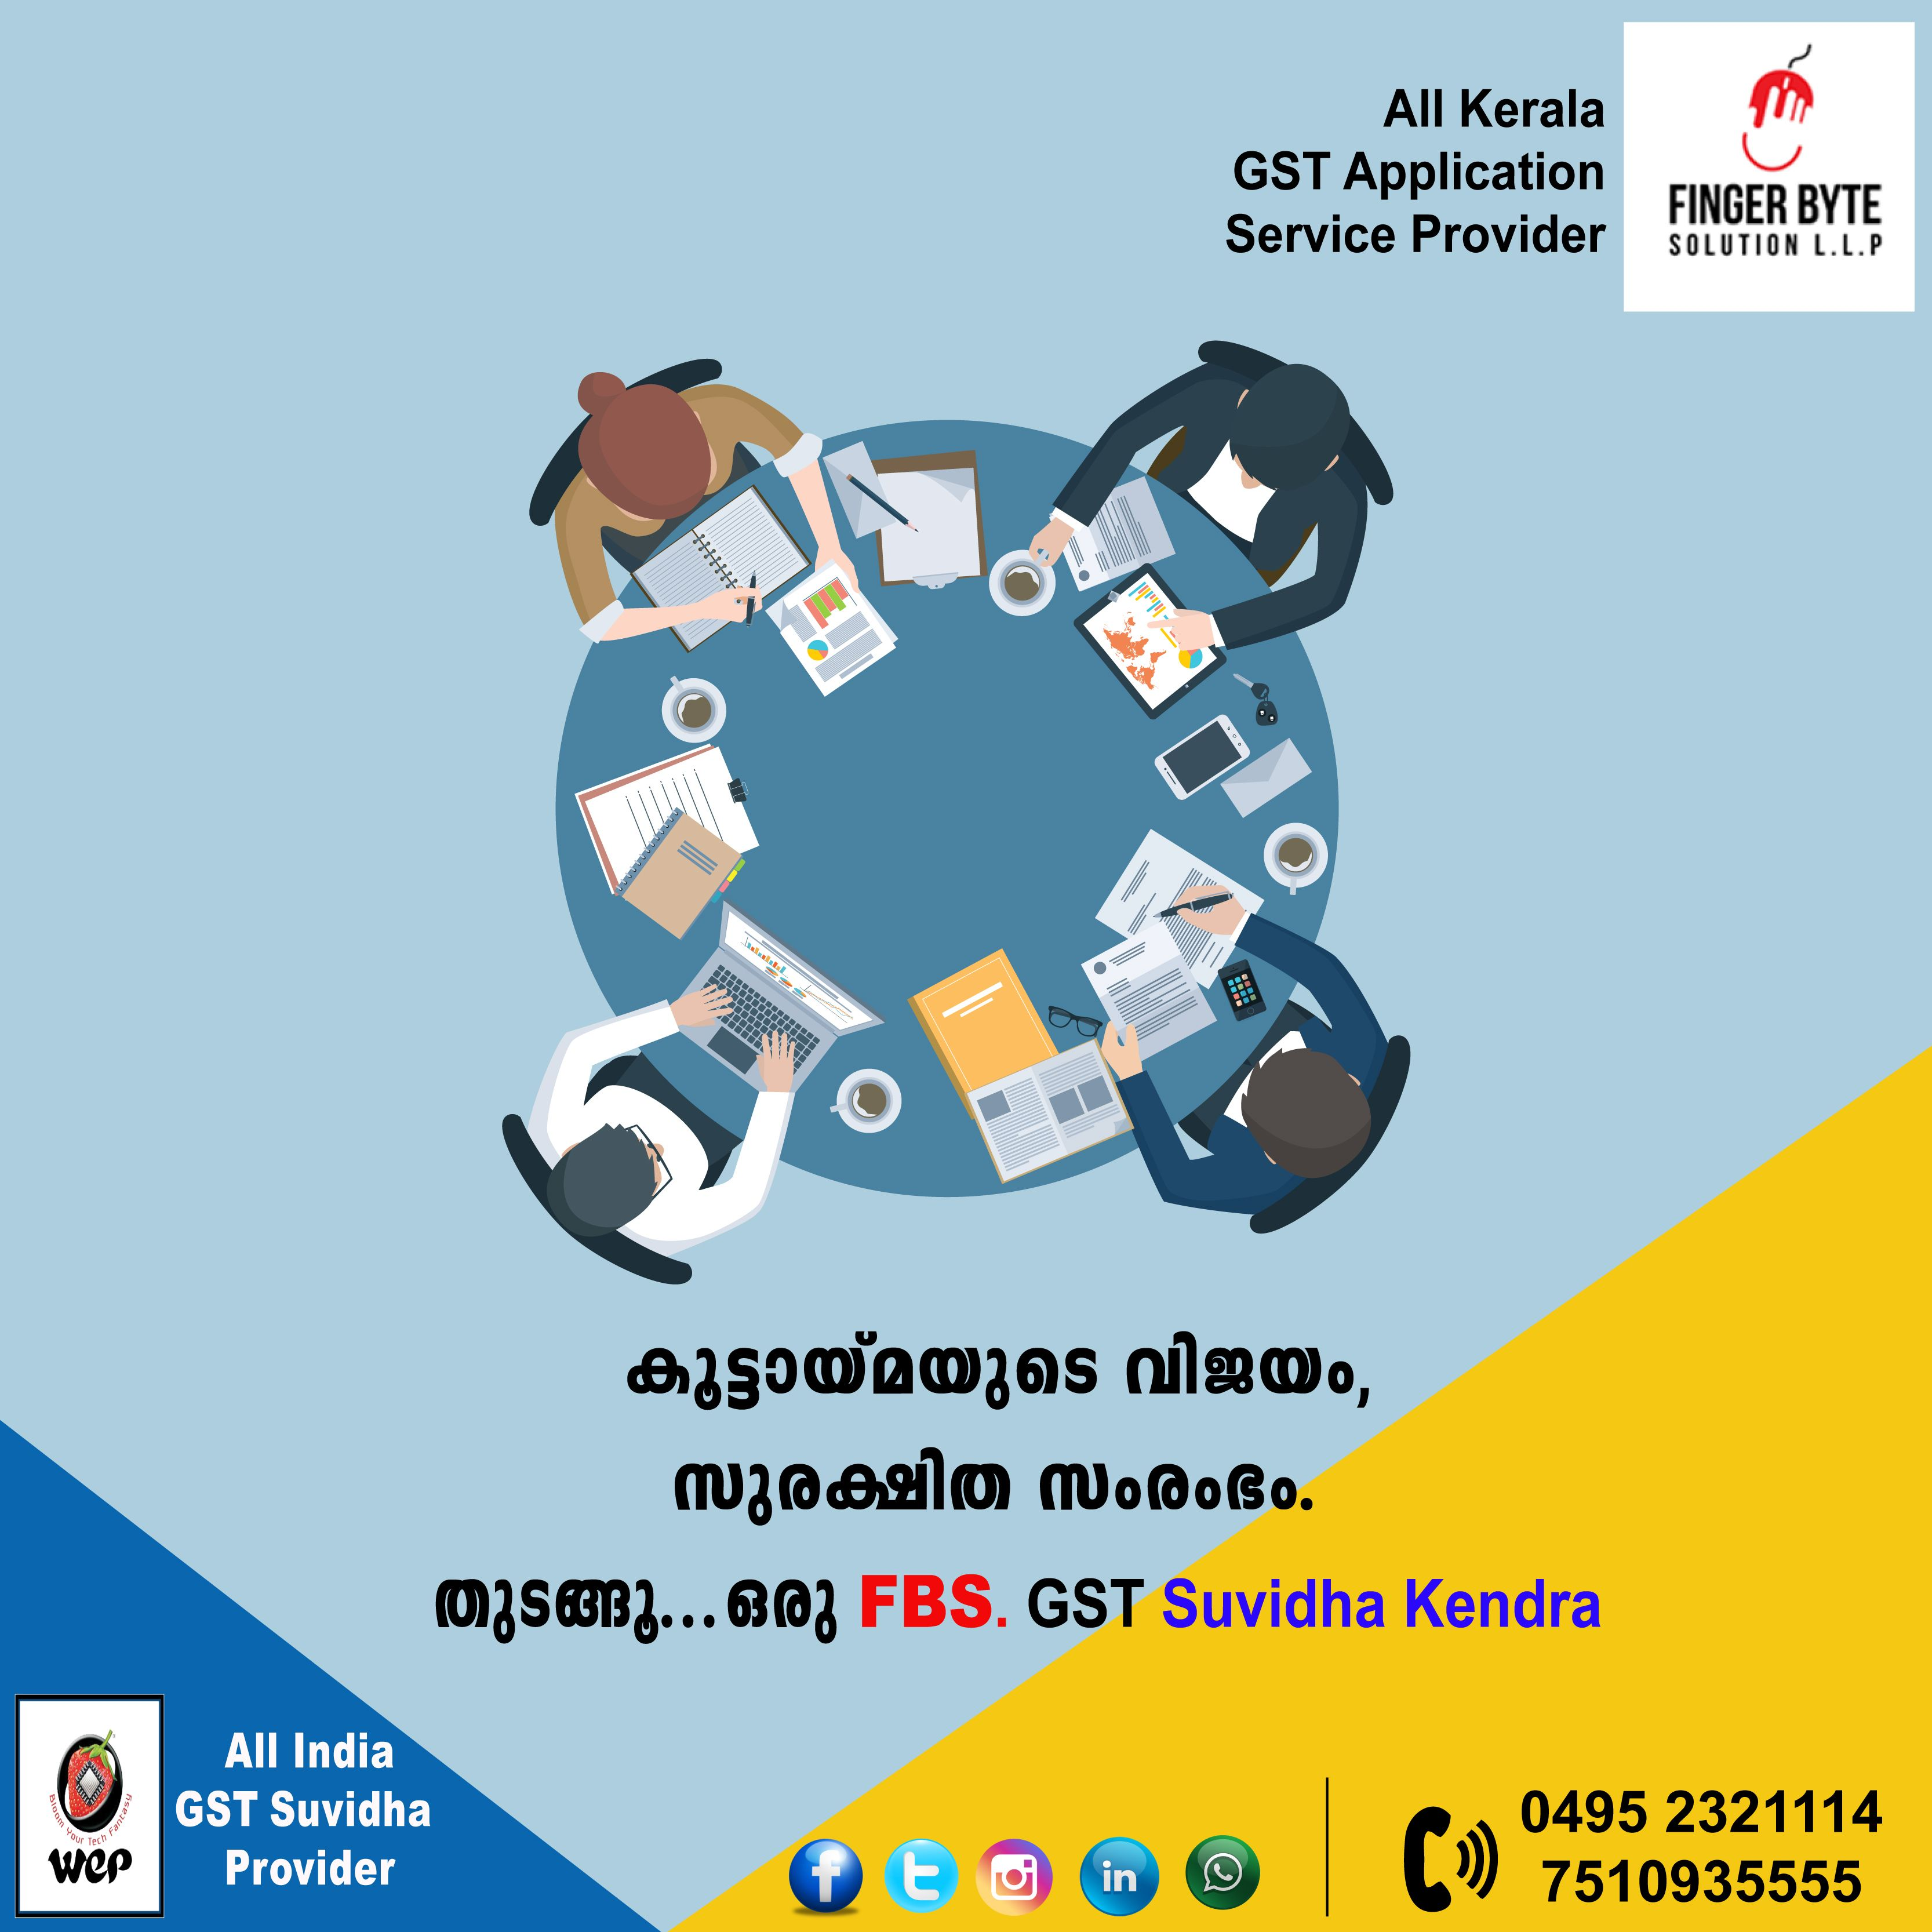 Become A Registered Gst Suvidha Kendra Owner With Finger Byte Solution Franchising How To Become Solutions